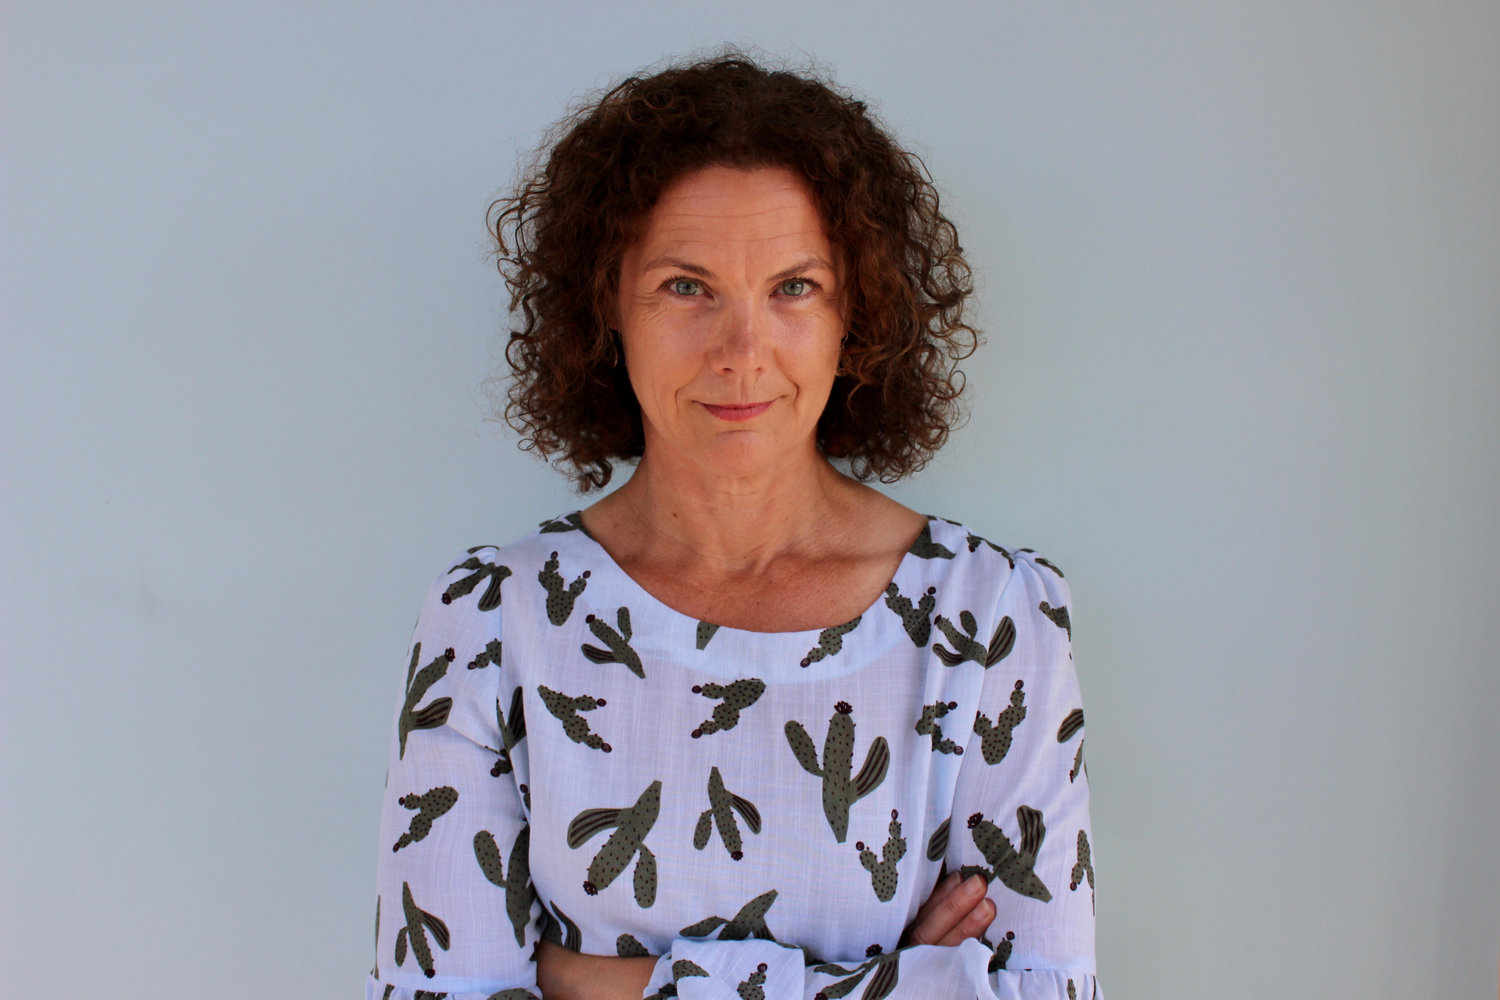 EightyOne appoints Tracey Bridges as chair